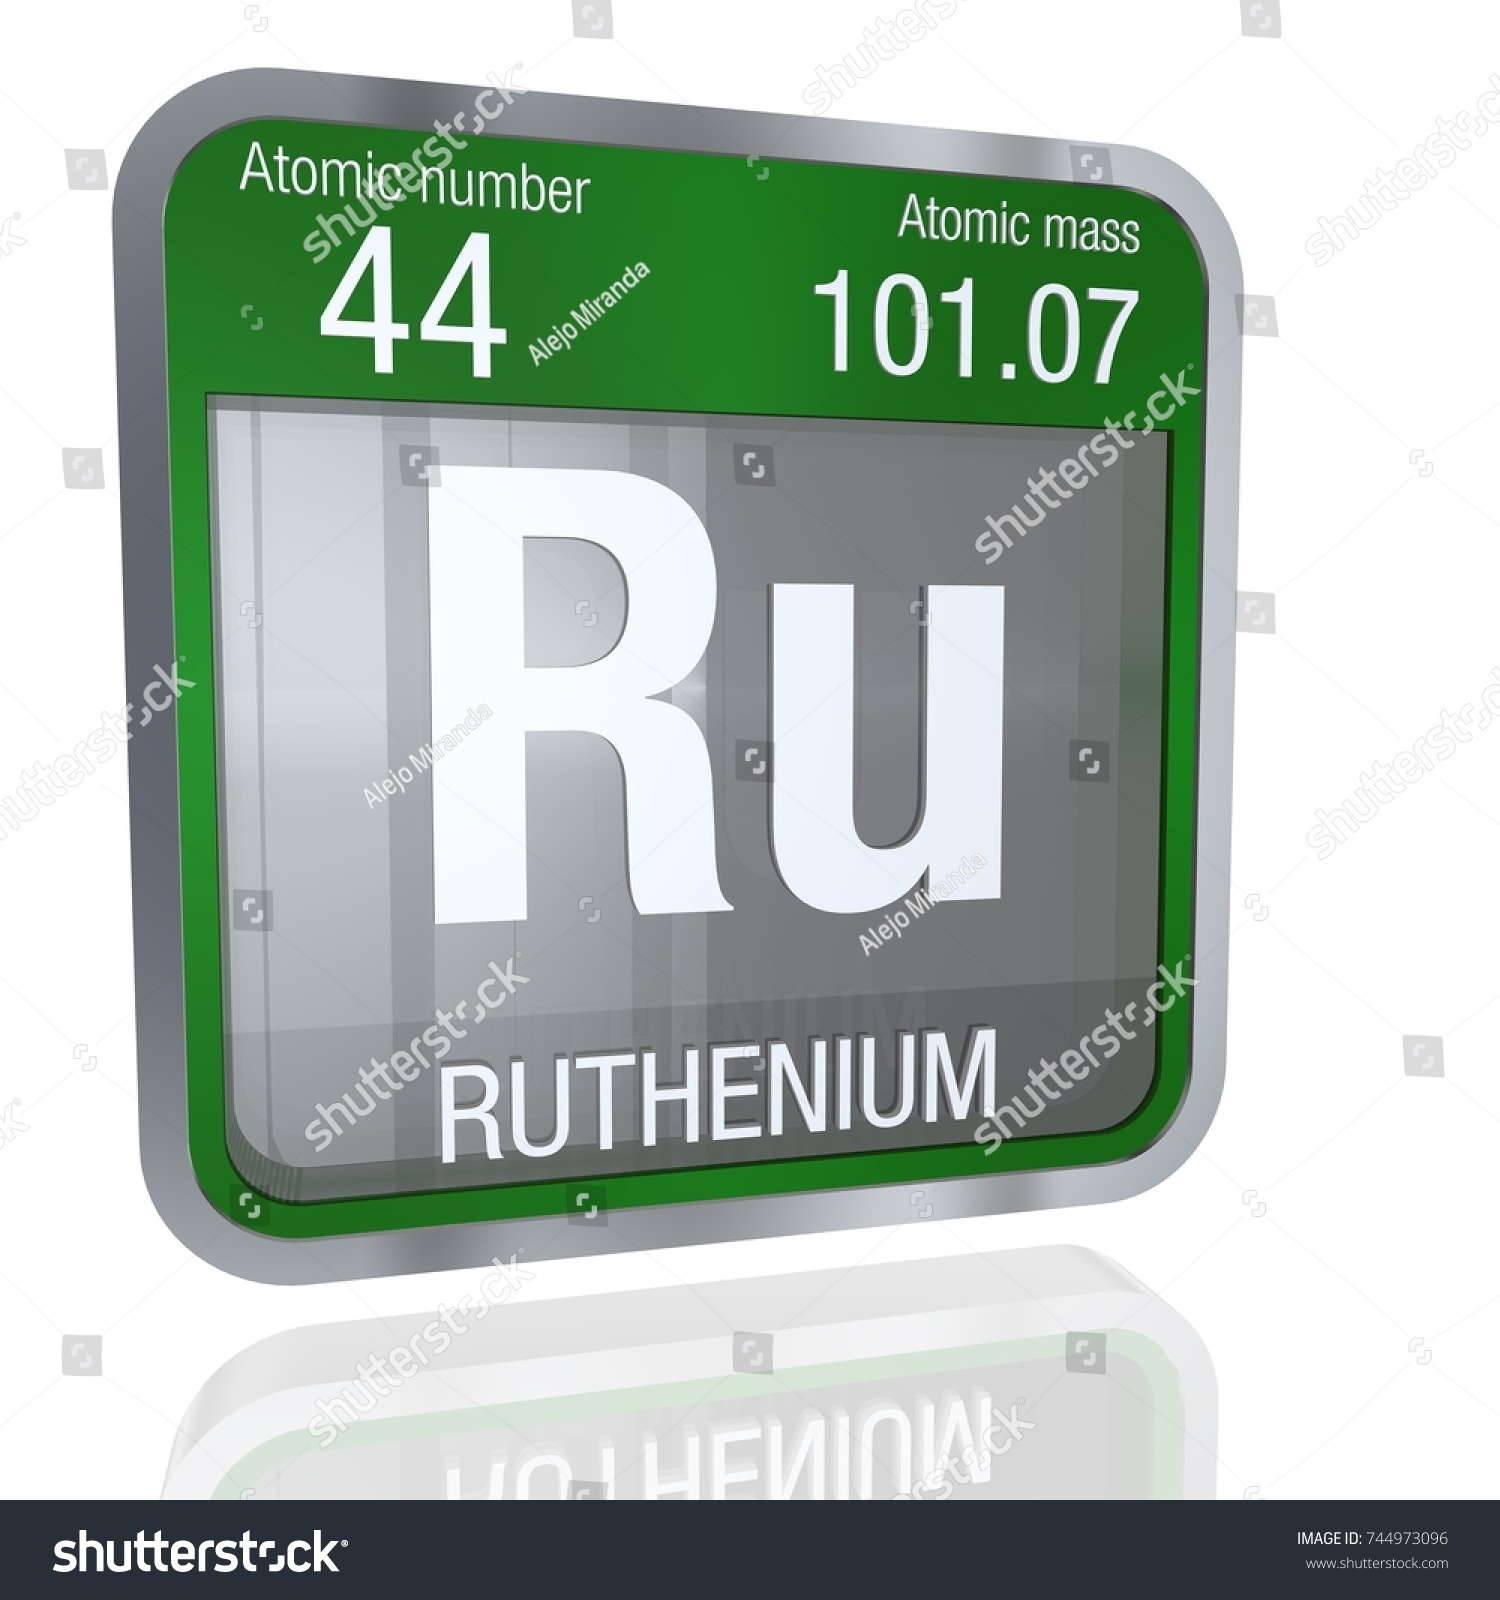 Ruthenium symbol square shape metallic border stock illustration ruthenium symbol in square shape with metallic border and transparent background with reflection on the floor gamestrikefo Choice Image